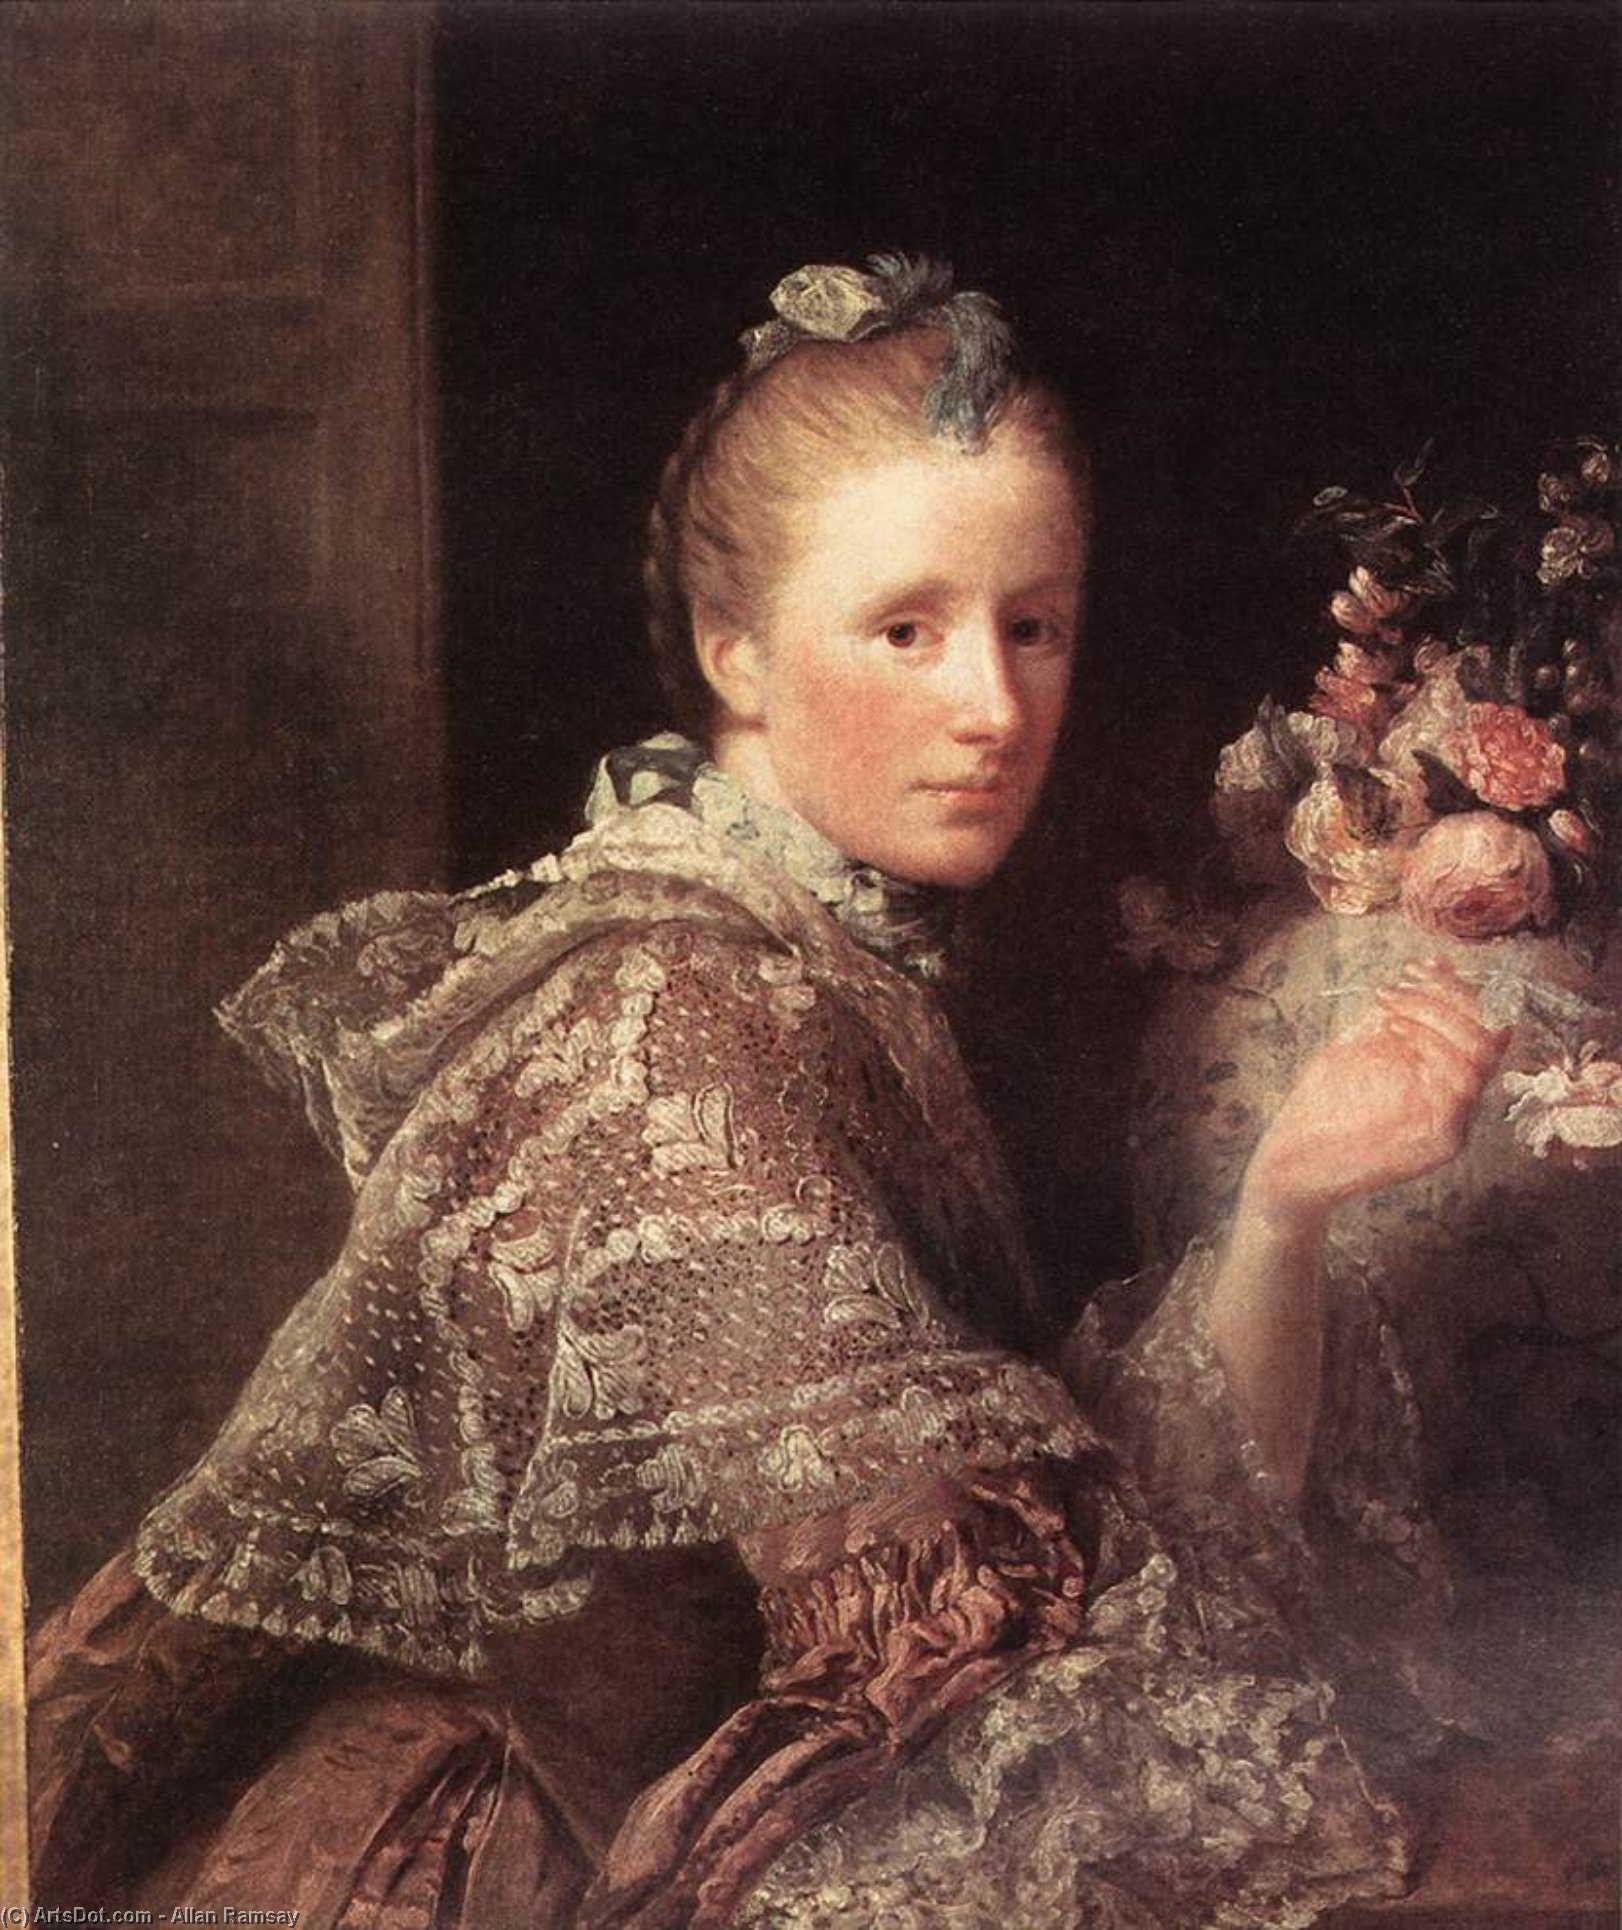 Wikioo.org - The Encyclopedia of Fine Arts - Painting, Artwork by Allan Ramsay - Portrait of the Artist's Wife